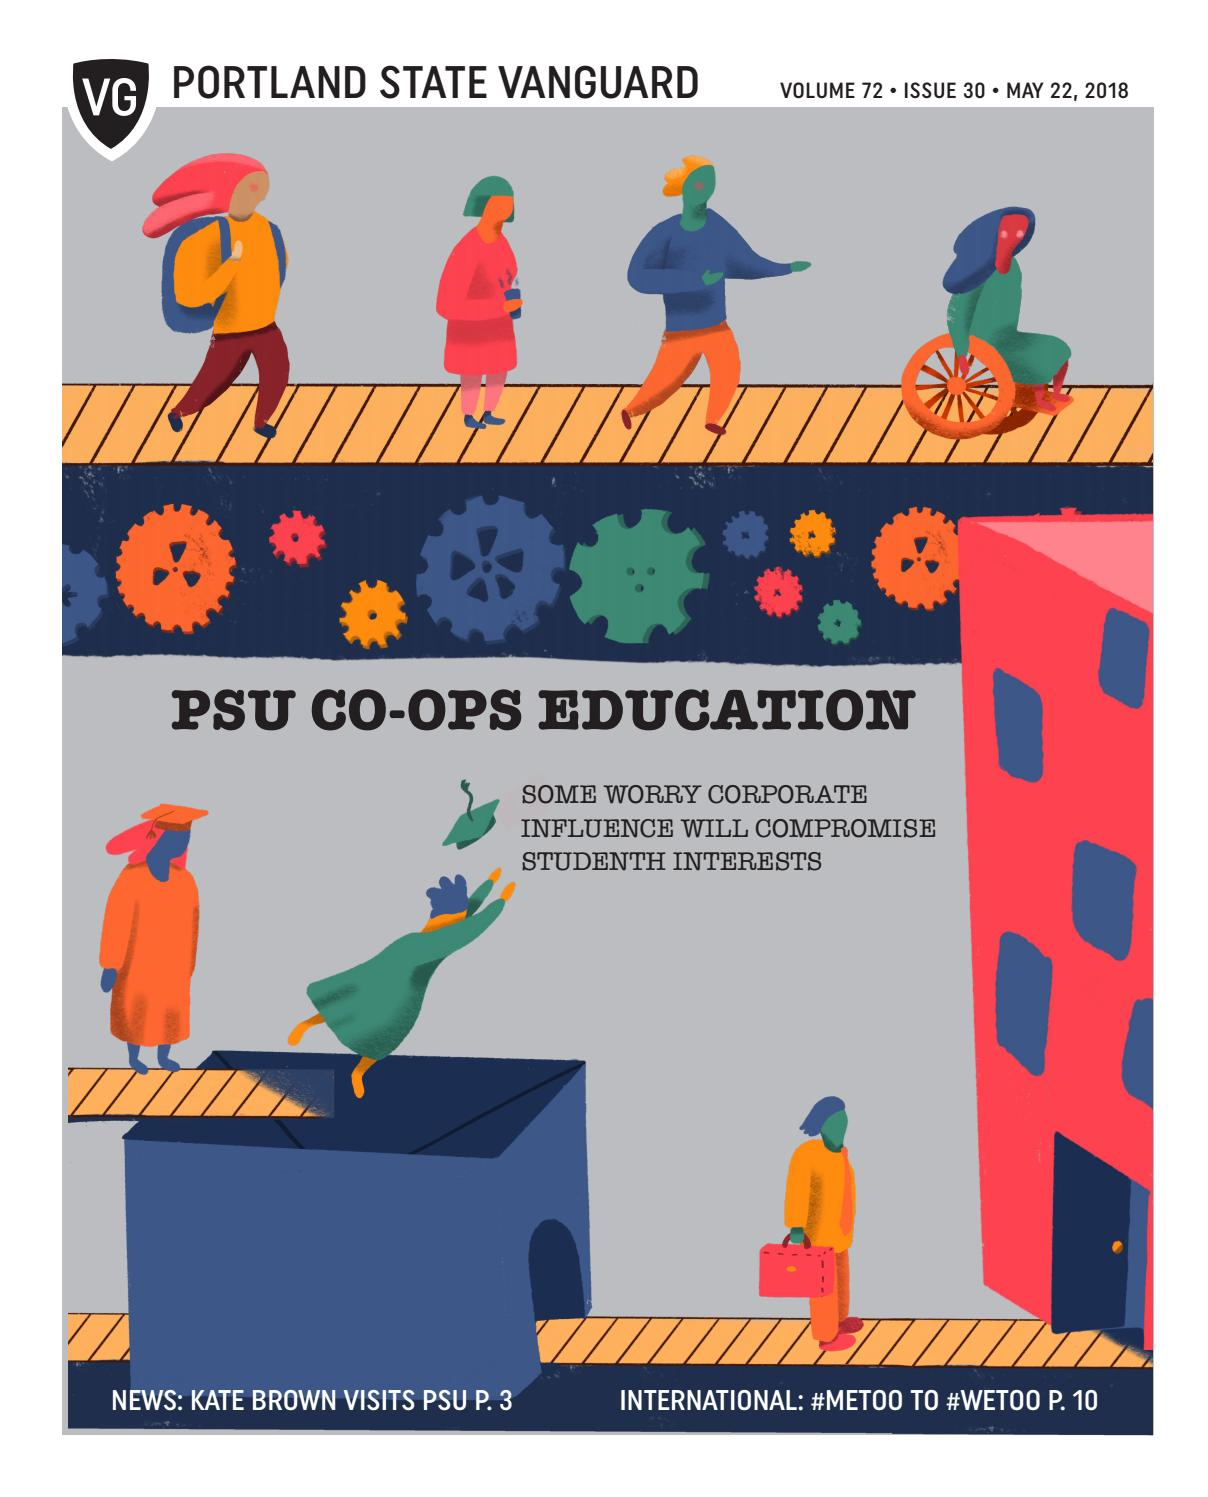 Portland State Vanguard Vol  72 Issue 30 by Portland State